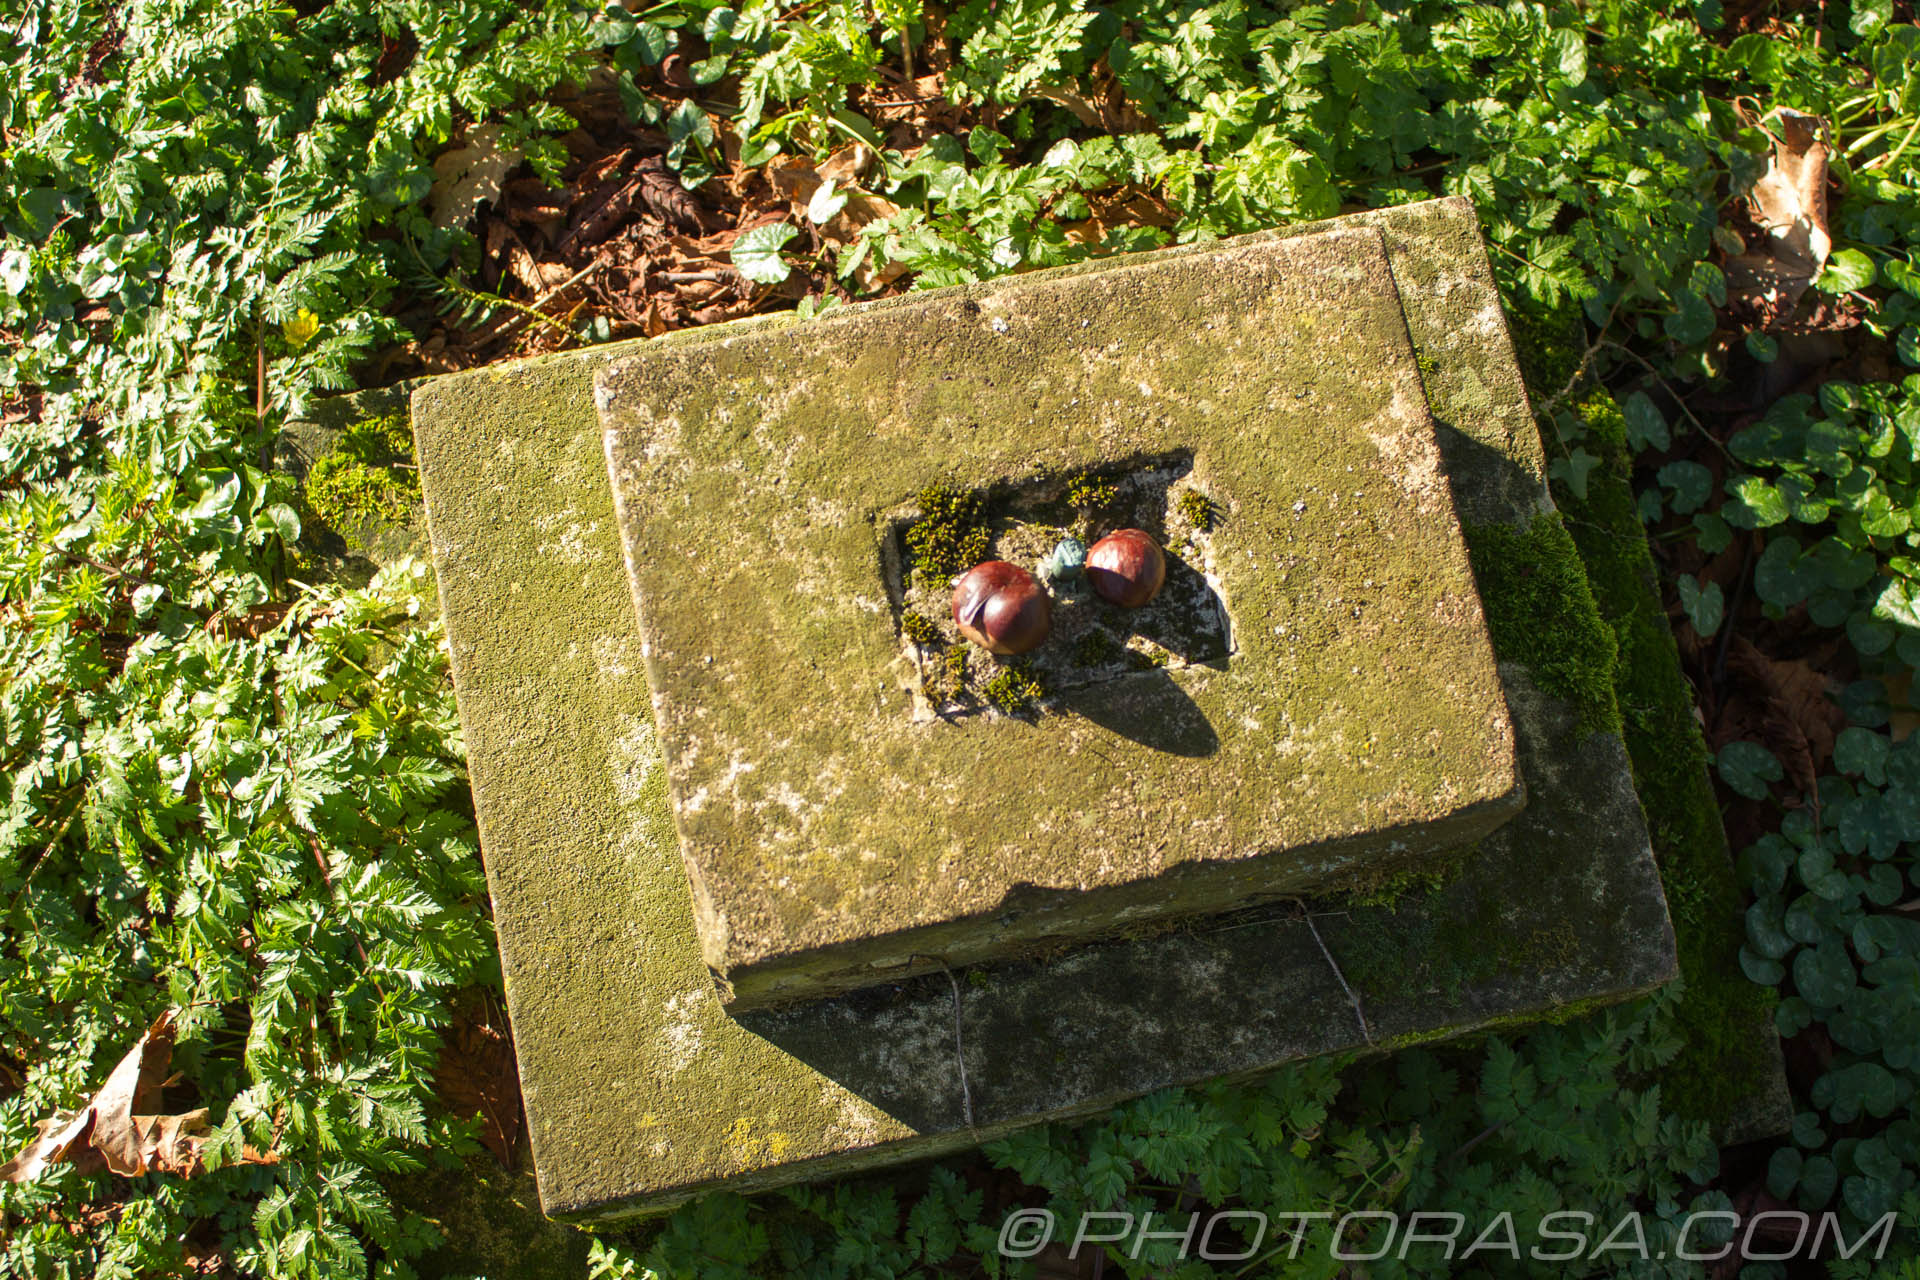 http://photorasa.com/parish-church-st-peter-st-paul-headcorn/grave-pedestal-with-conkers/